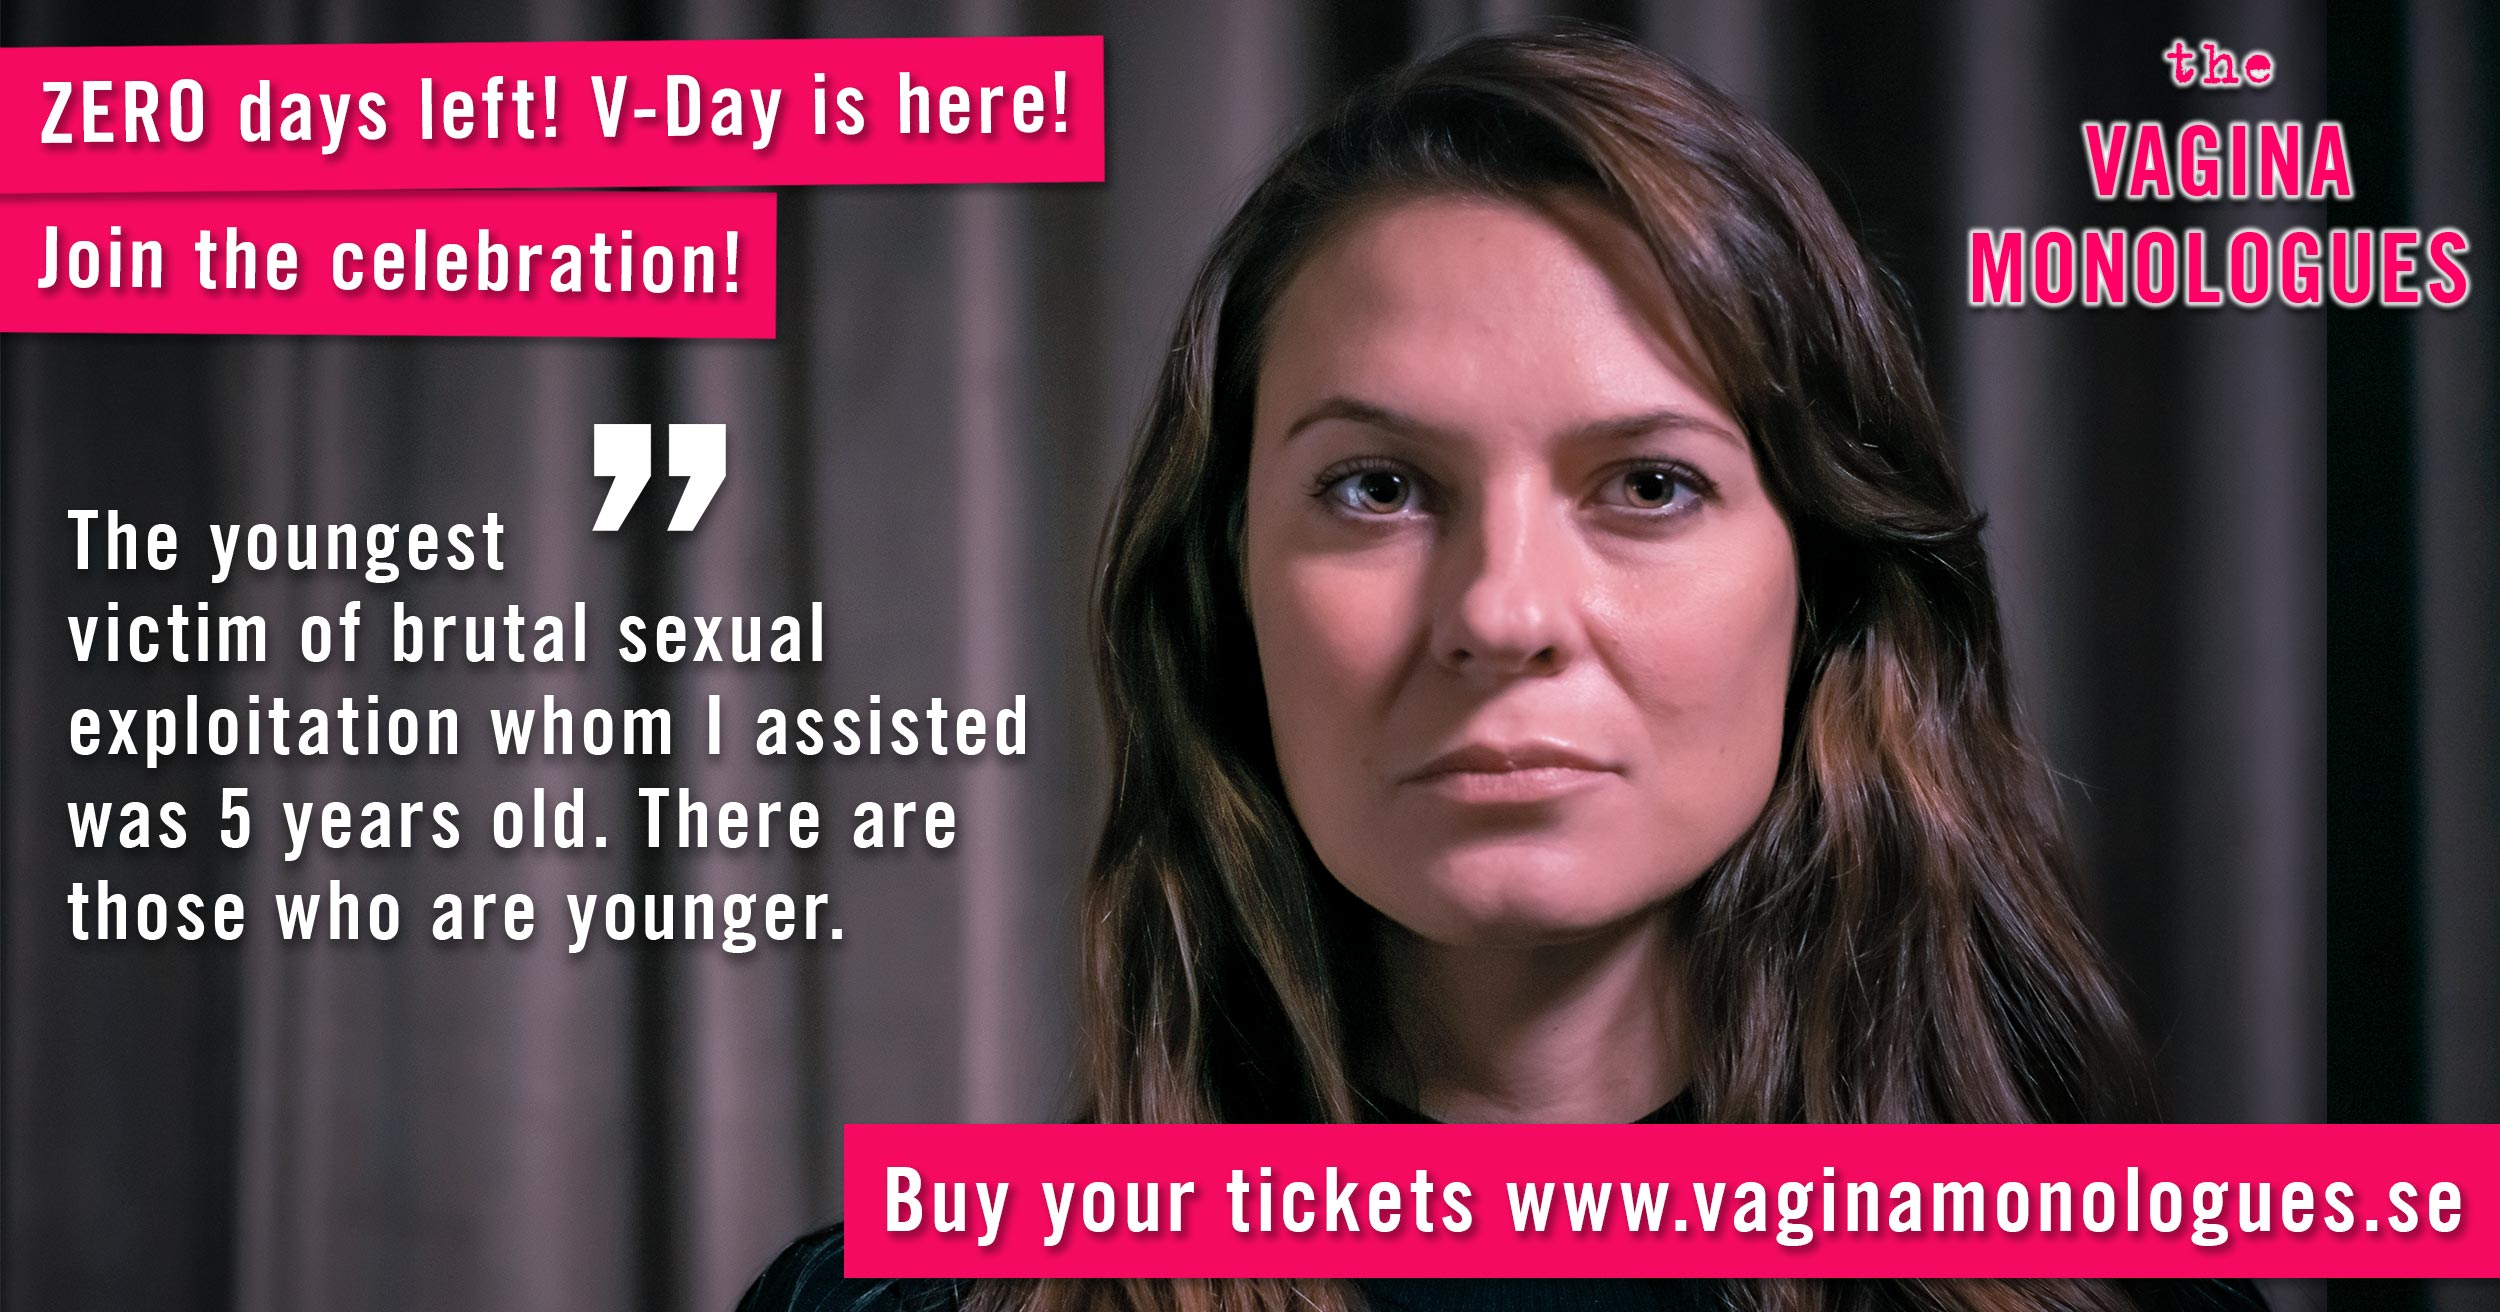 Elena is supporting The Vagina Monologues on 6th March 2020. Buy tickets at vaginamonologues.se!